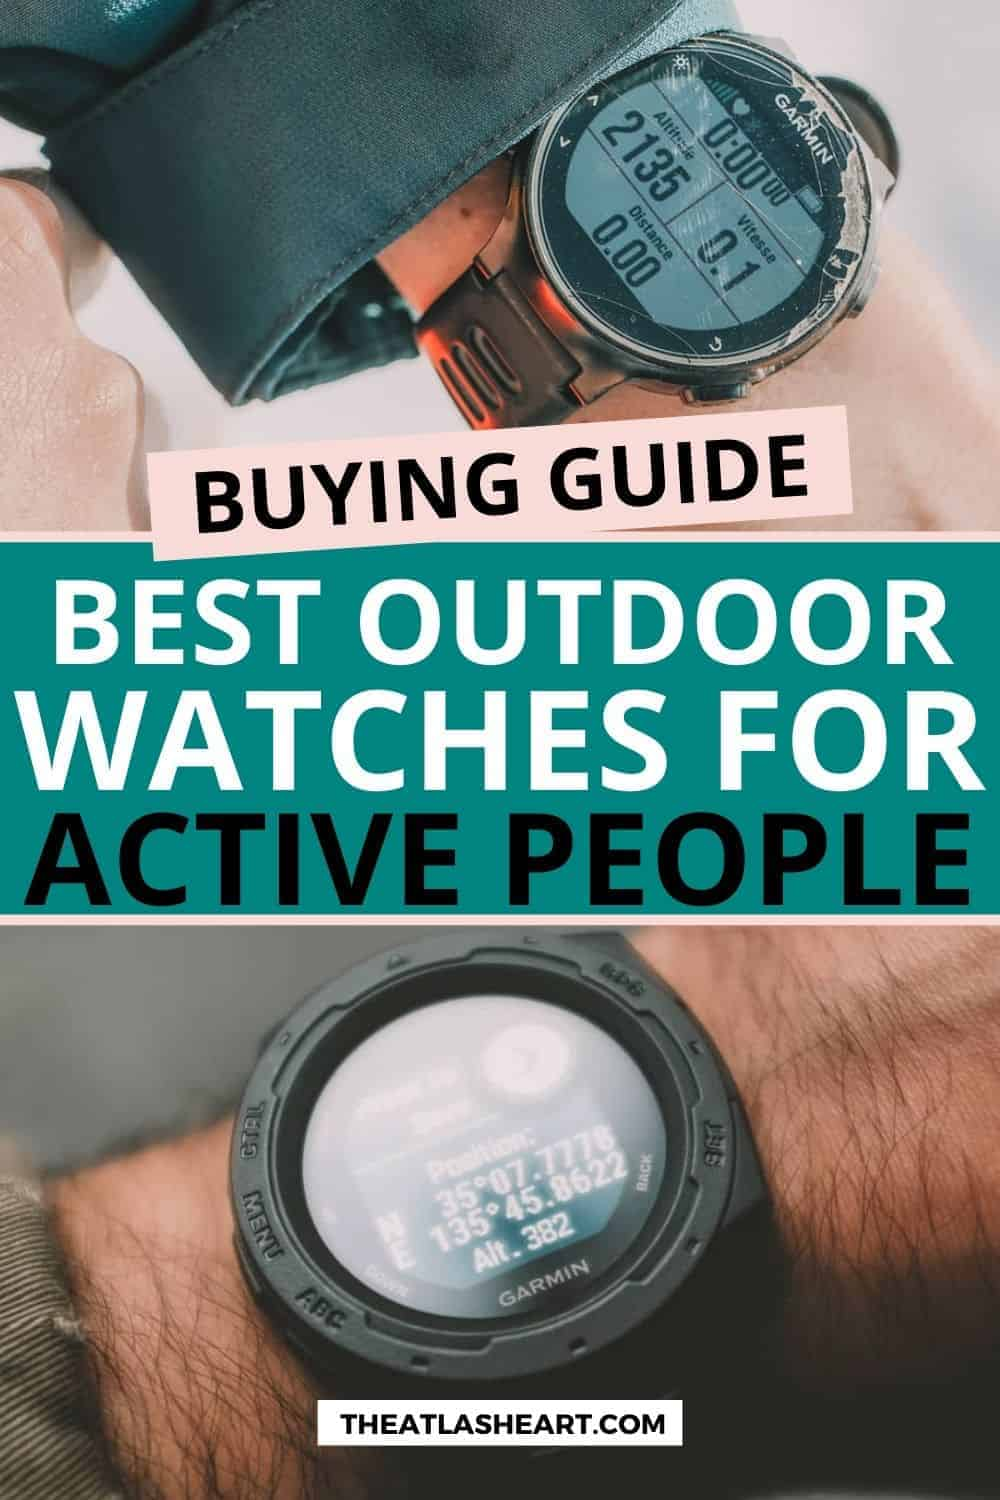 13 Best Outdoor Watches for Active People (2021 Buying Guide)